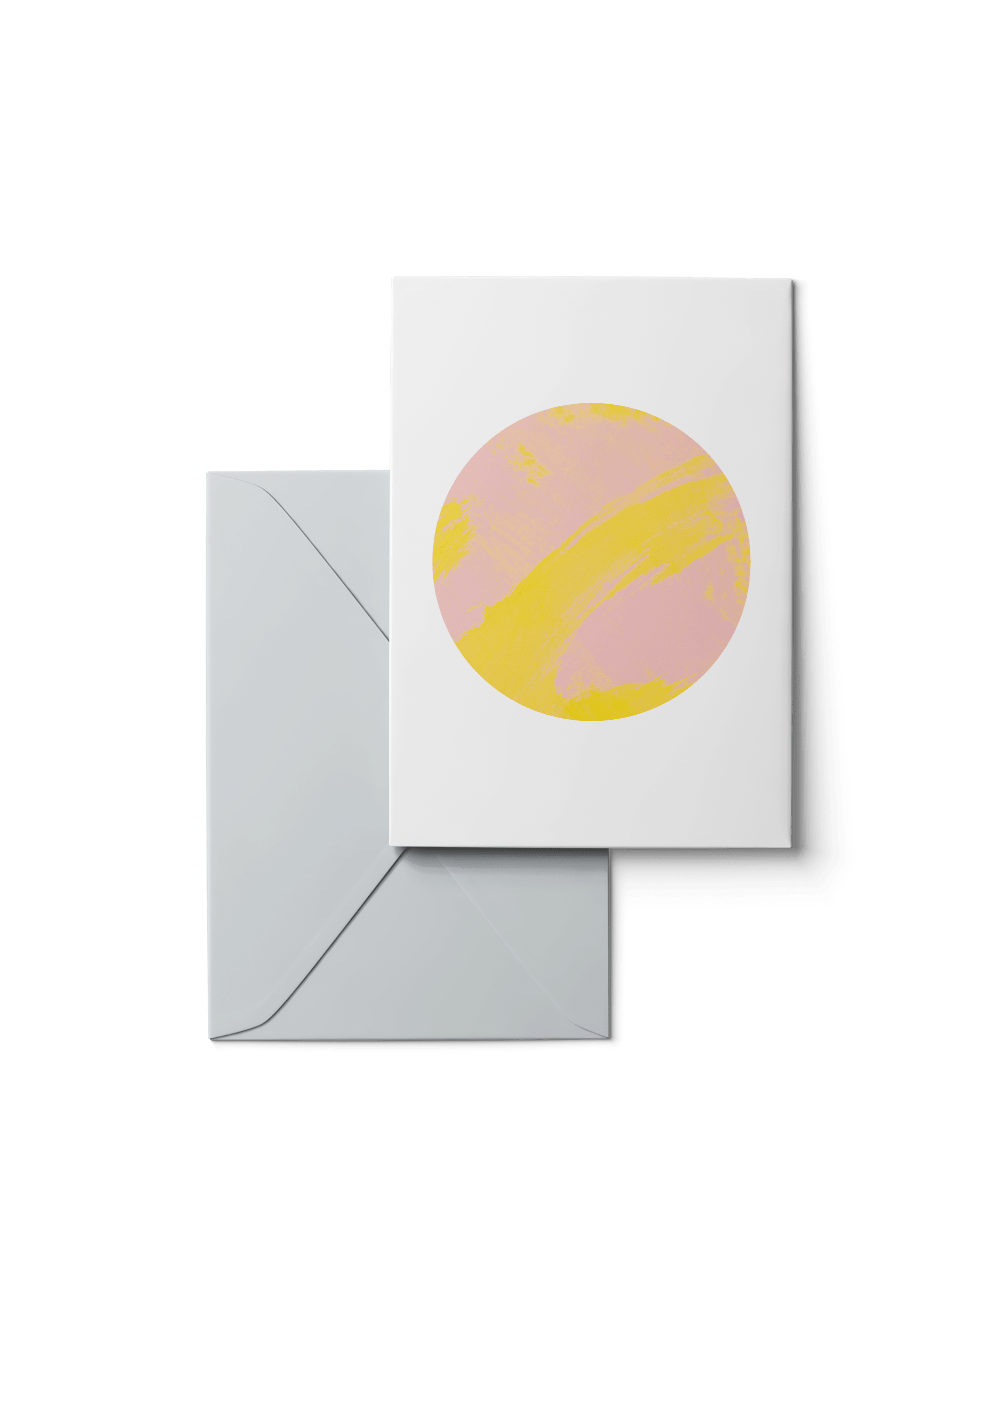 Custom Between Days, Pink, 6 Karten Set by Karten Design Fabrik. Supplier of designer Greeting Cards, Gift Wrap, Christmas Cards & Invitations to leading design stores including Connox, Modulor, Magazin & Manufactum.